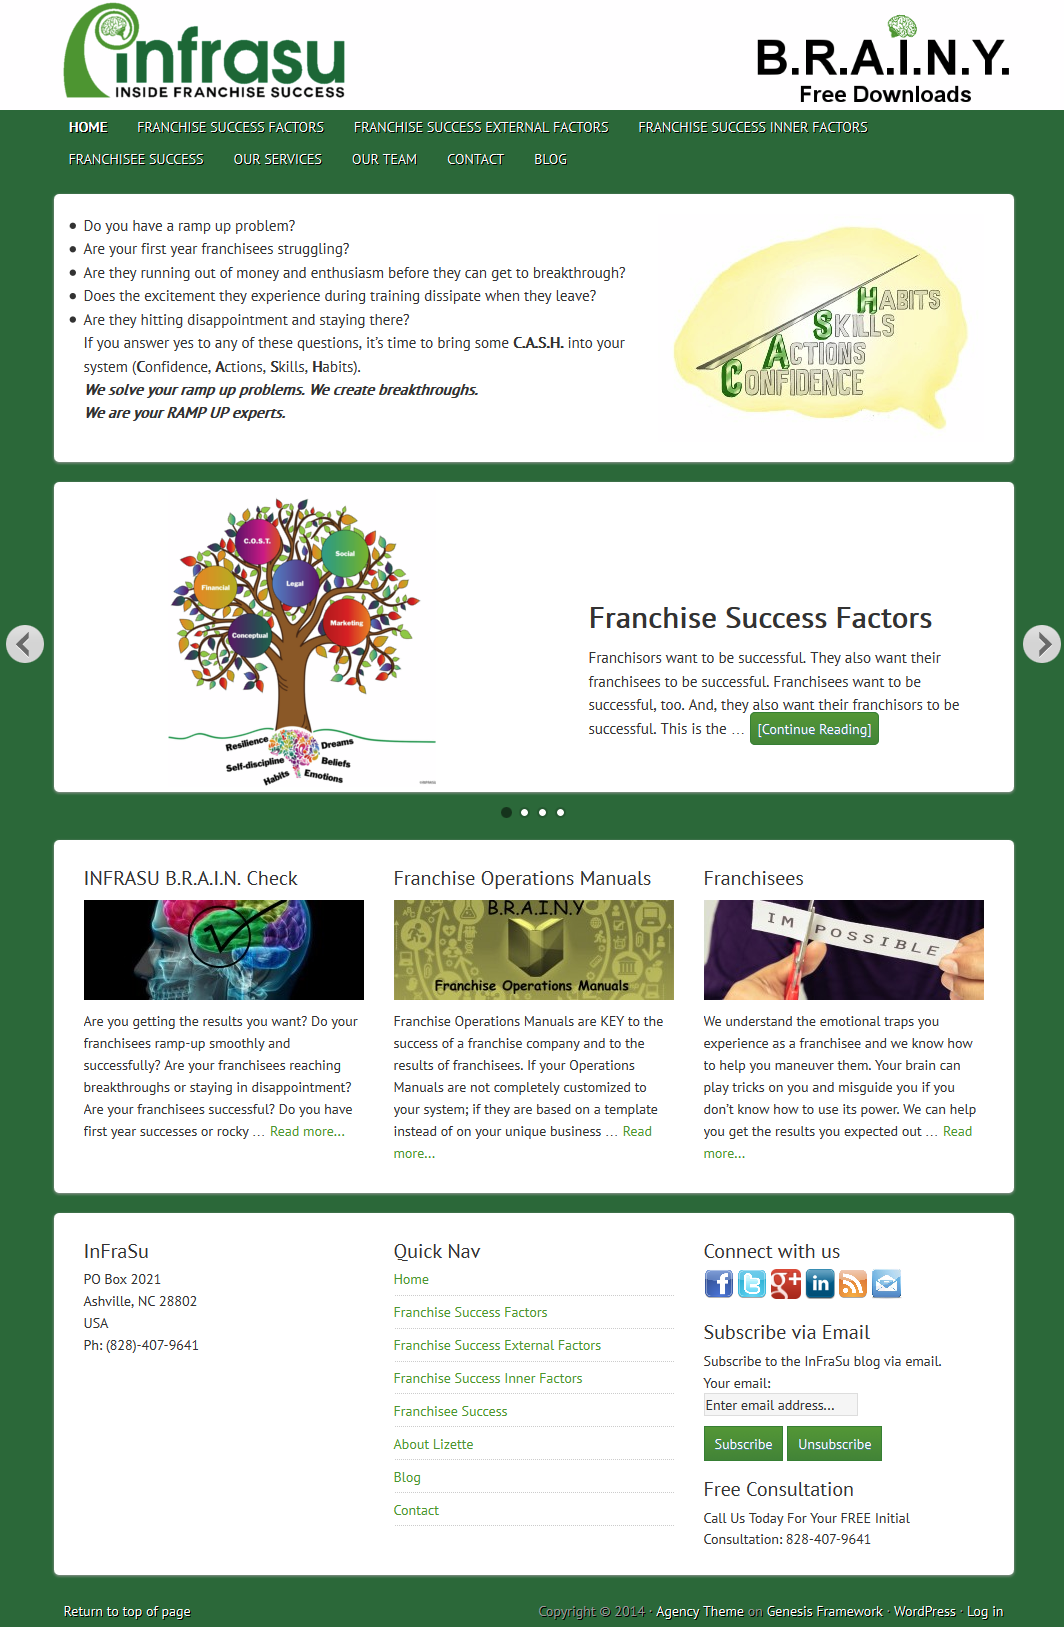 InFraSu - Inside Franchise Success website homepage.